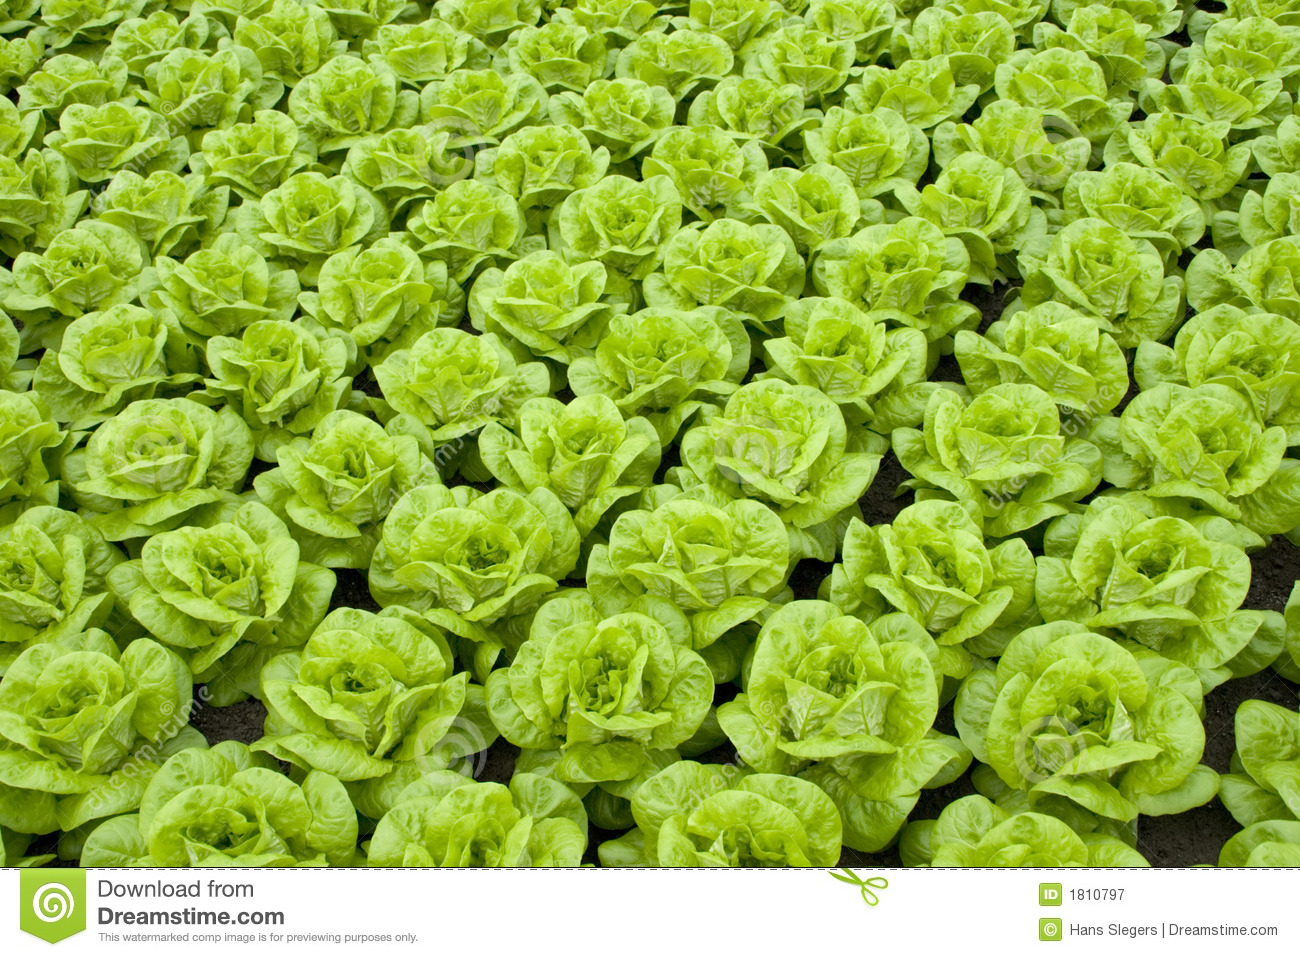 Rows of fresh green lettuce or butter-lettuce.